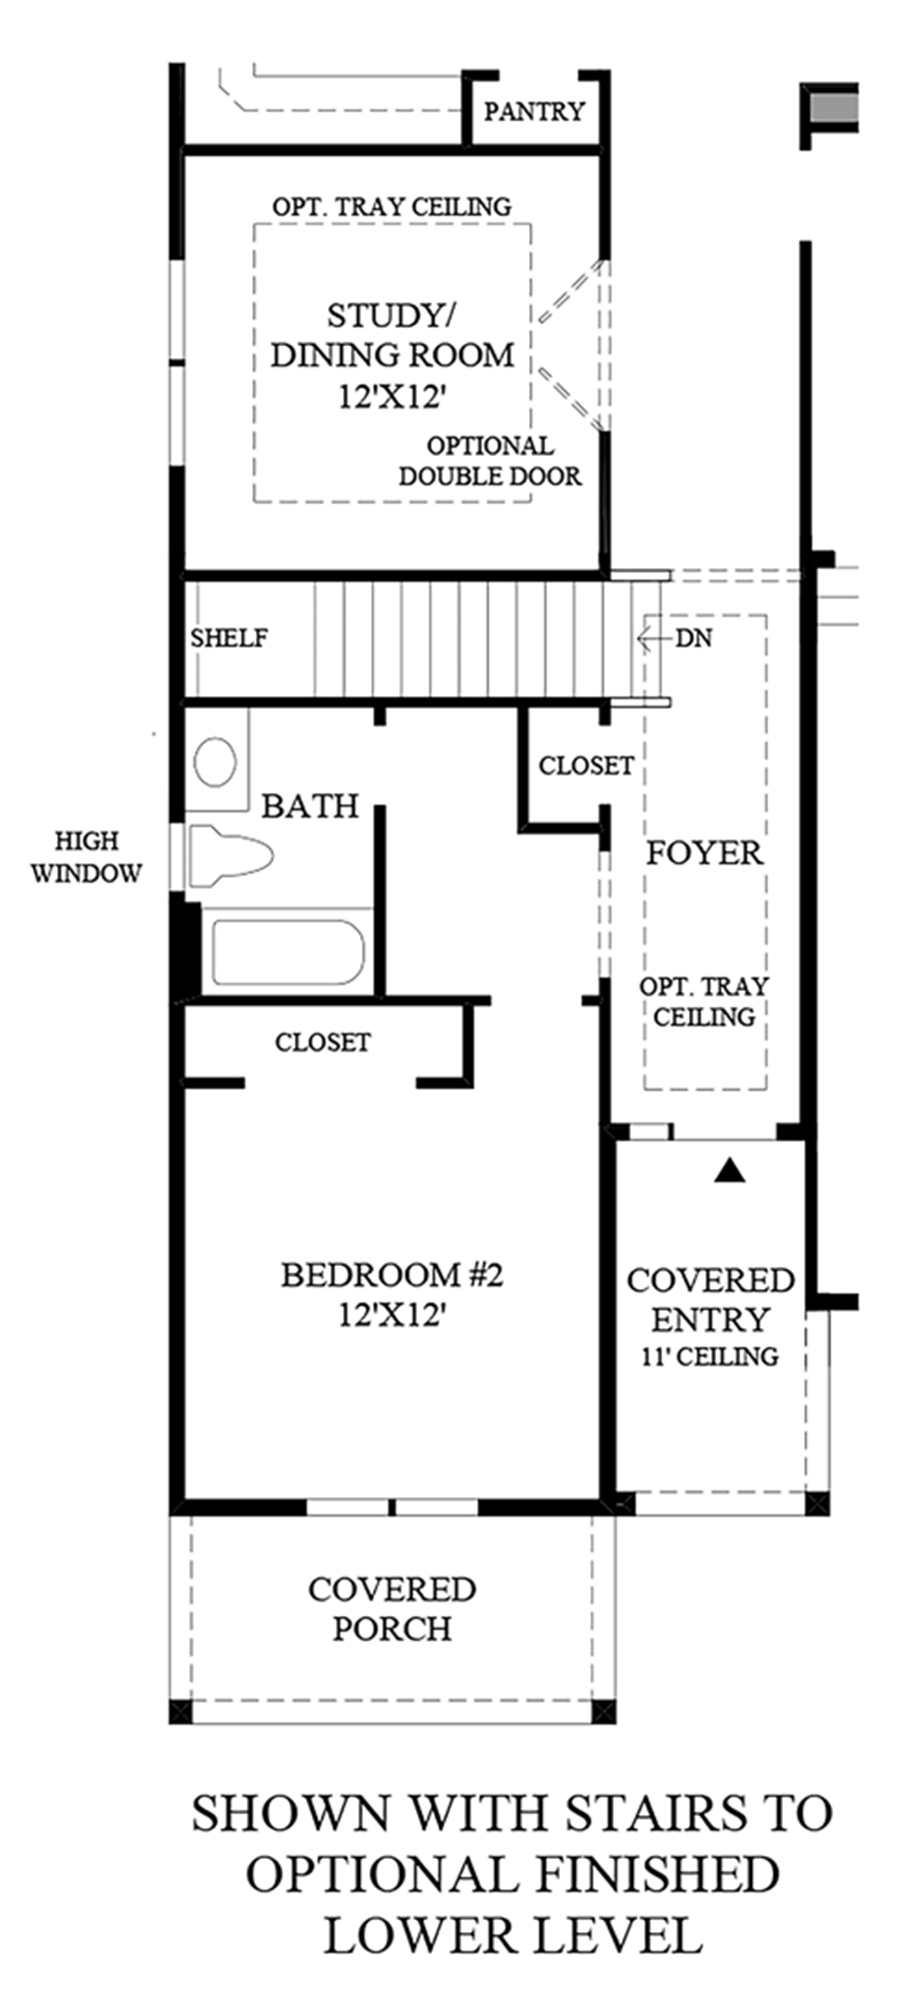 Stairs to Optional Finished Lover Level Floor Plan